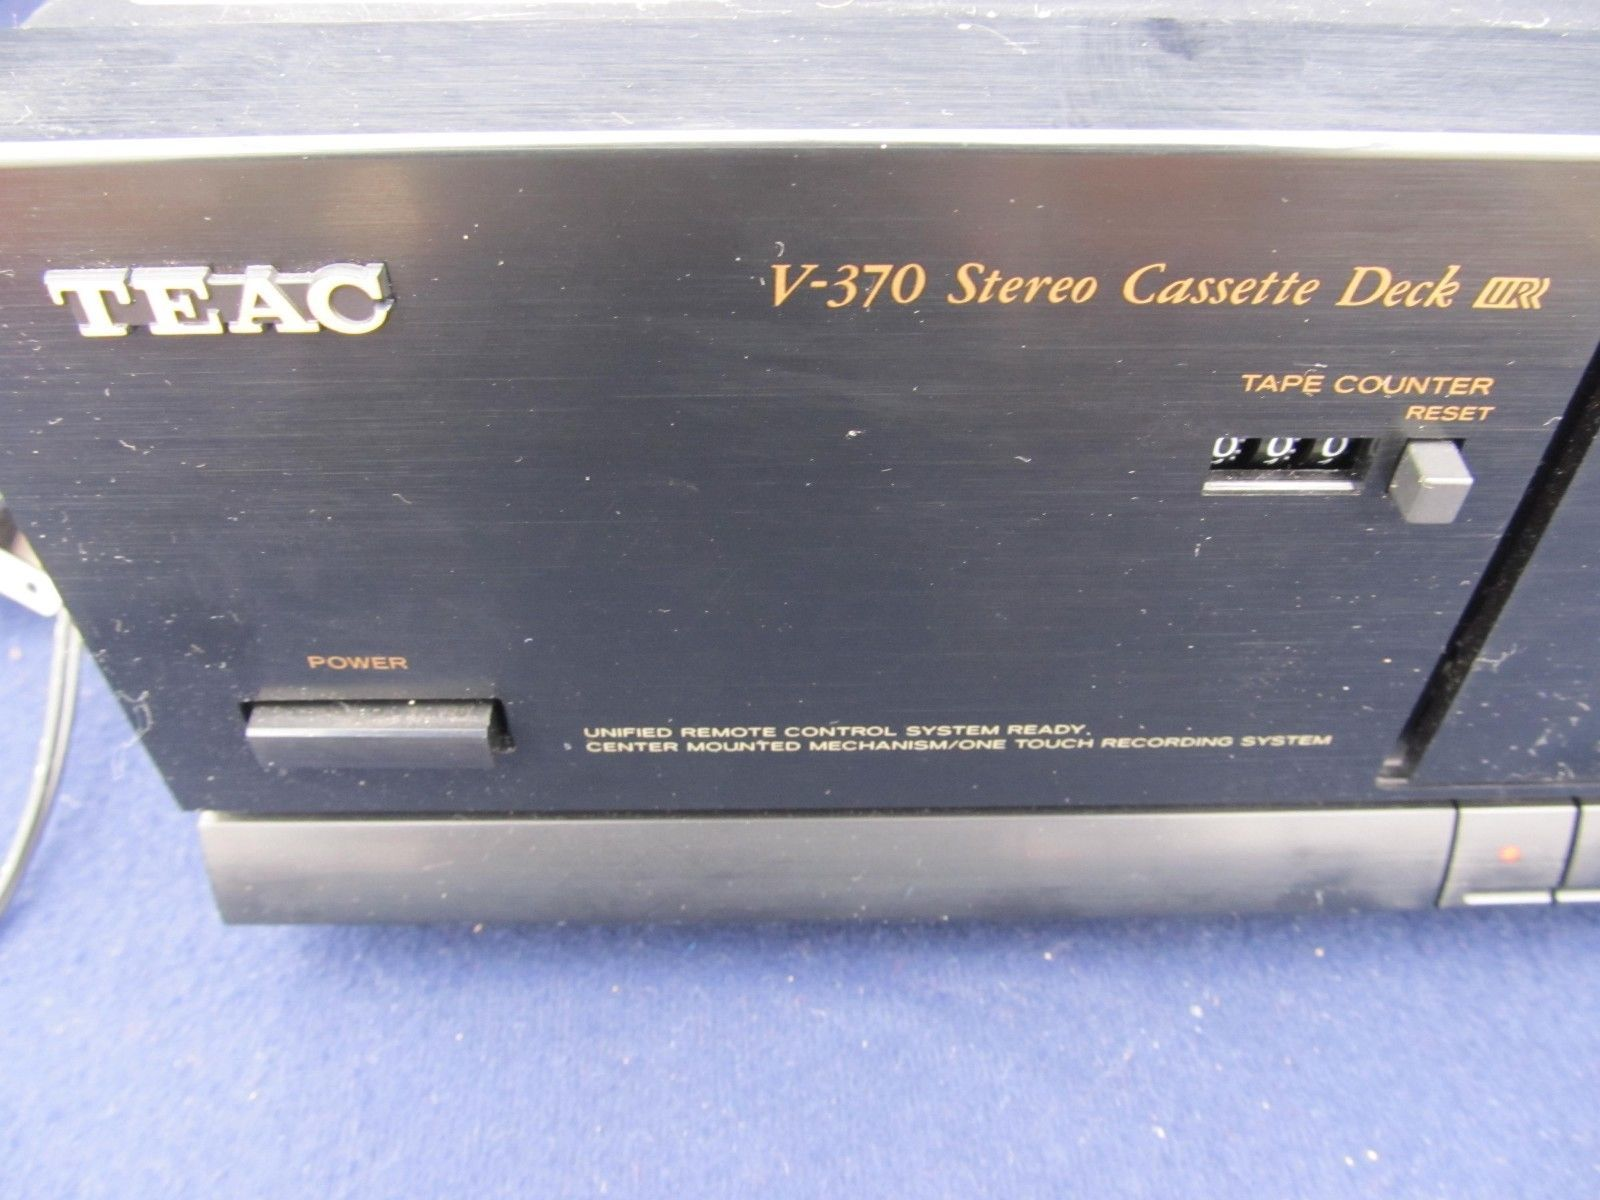 TEAC   V-370 Stereo Cassette Tape Deck for Repairs or Parts